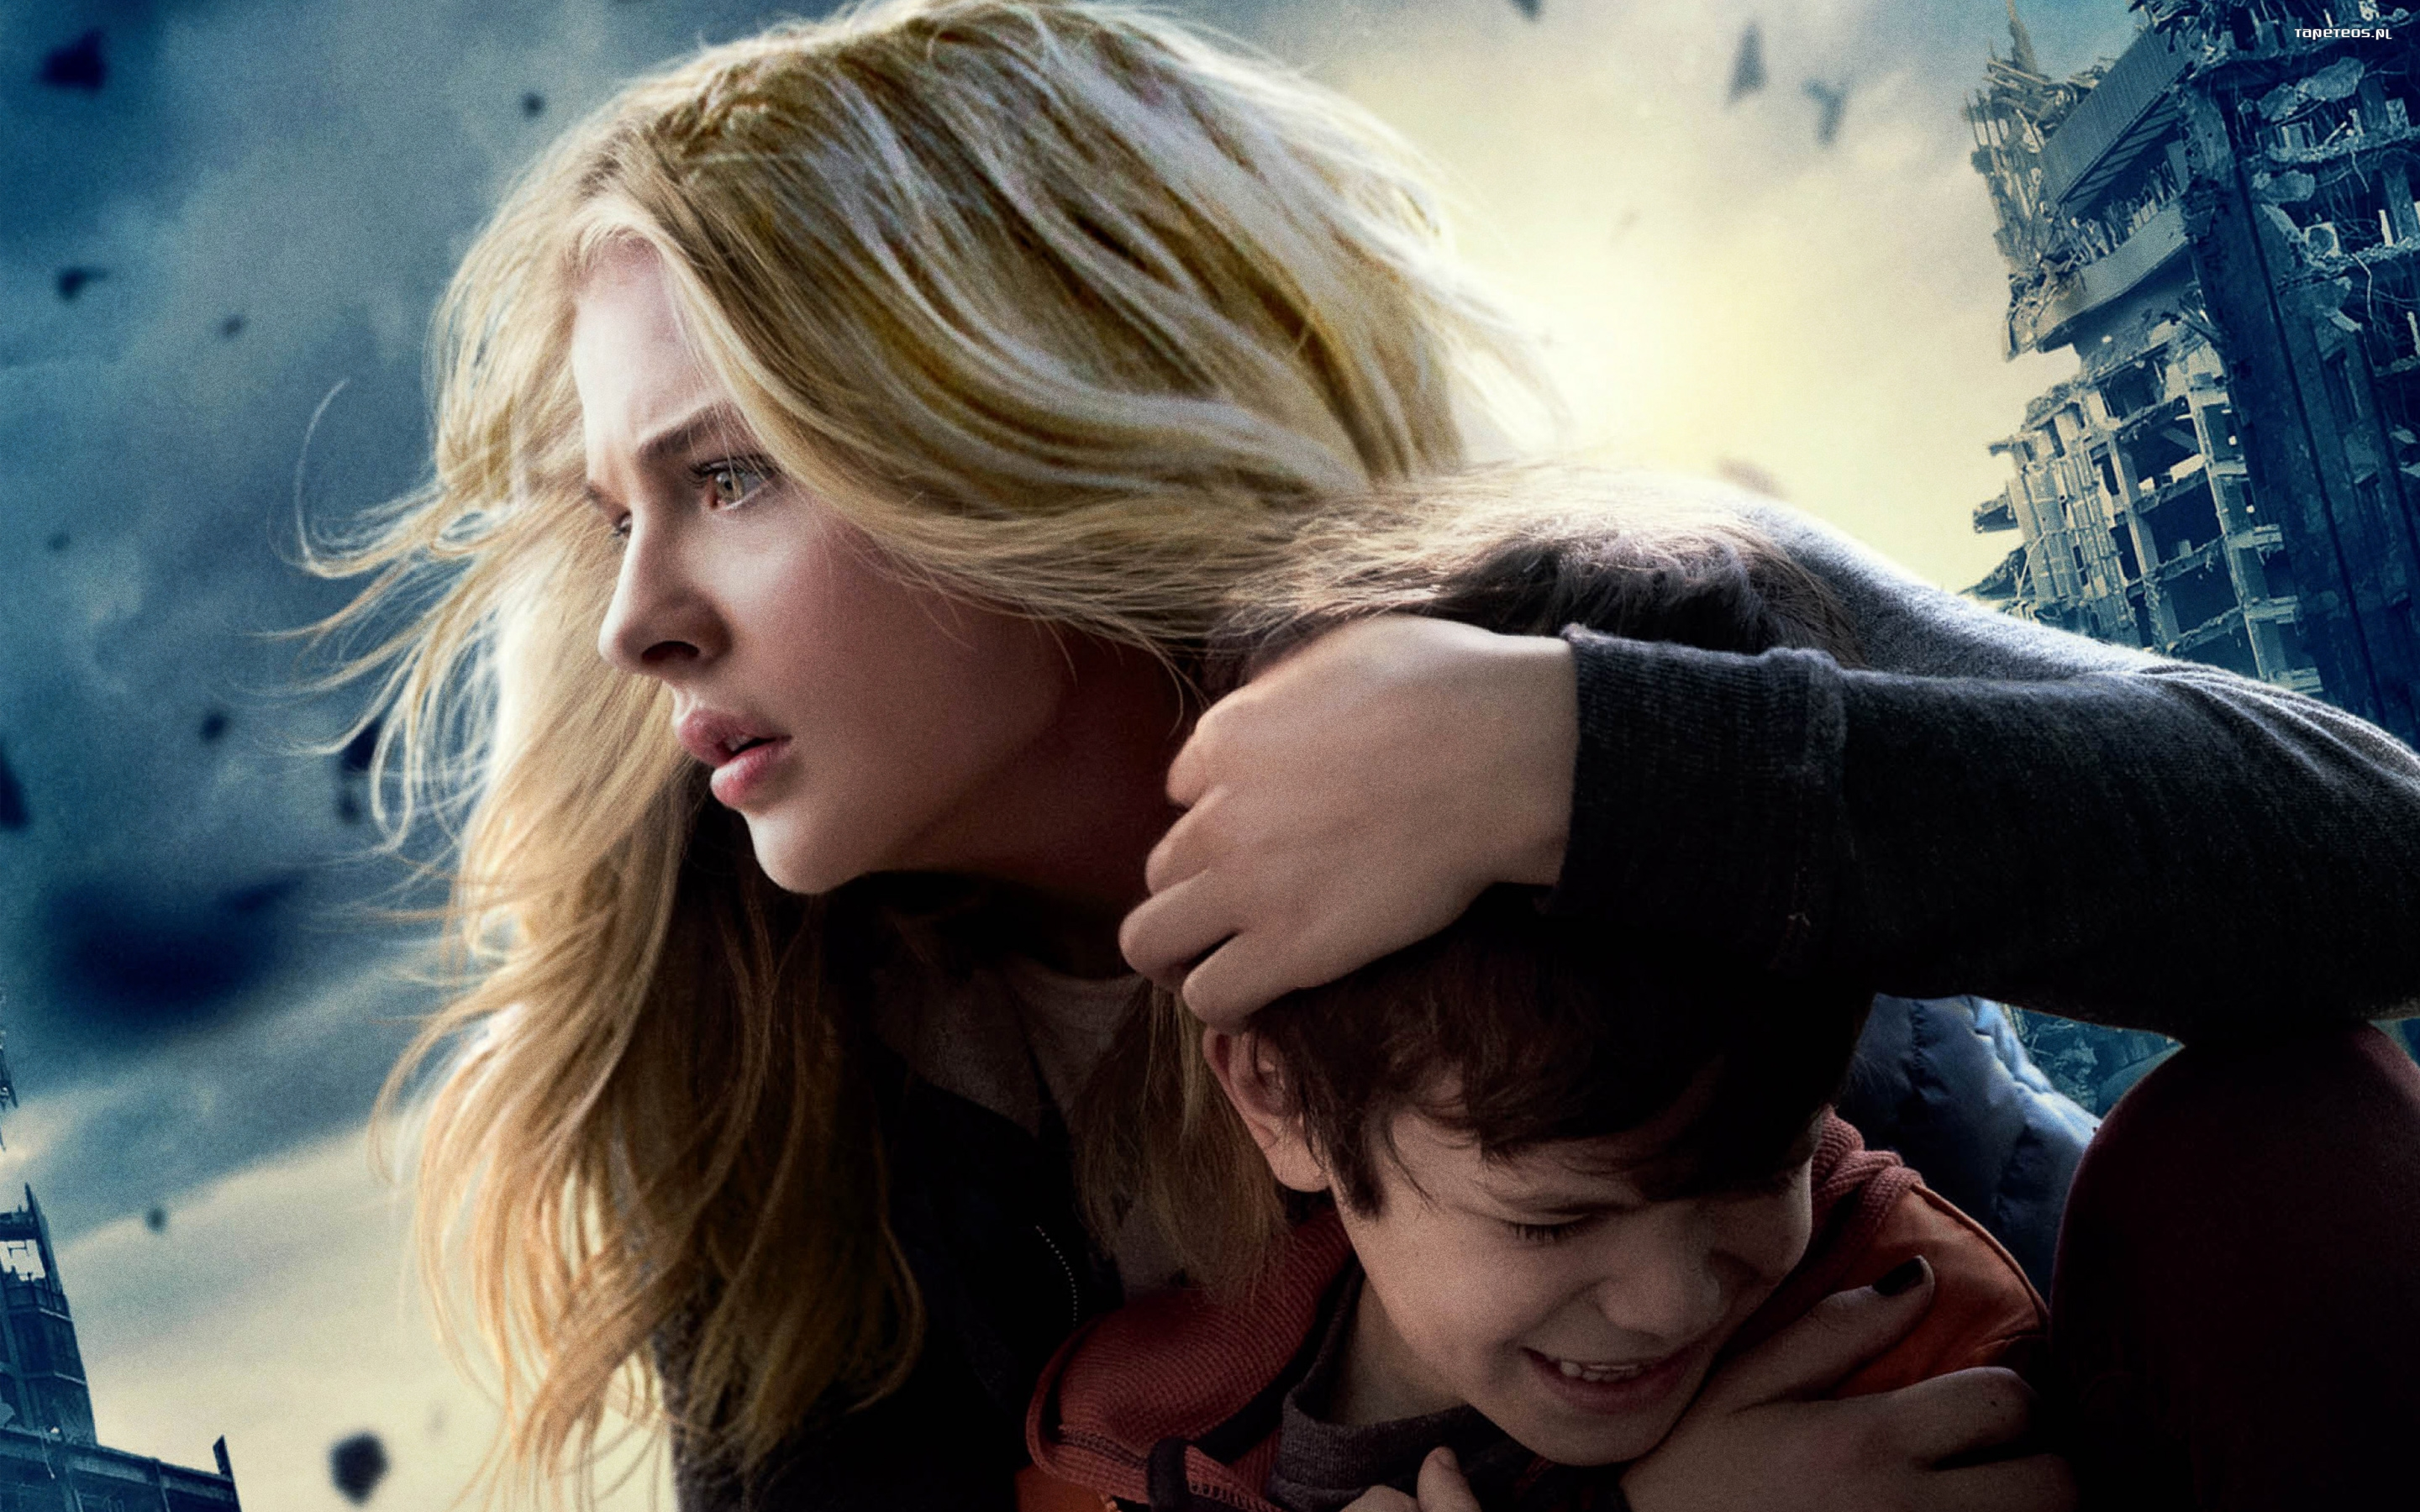 Piata fala (2016) The 5th Wave 003 Chloe Grace Moretz, Cassie Sullivan